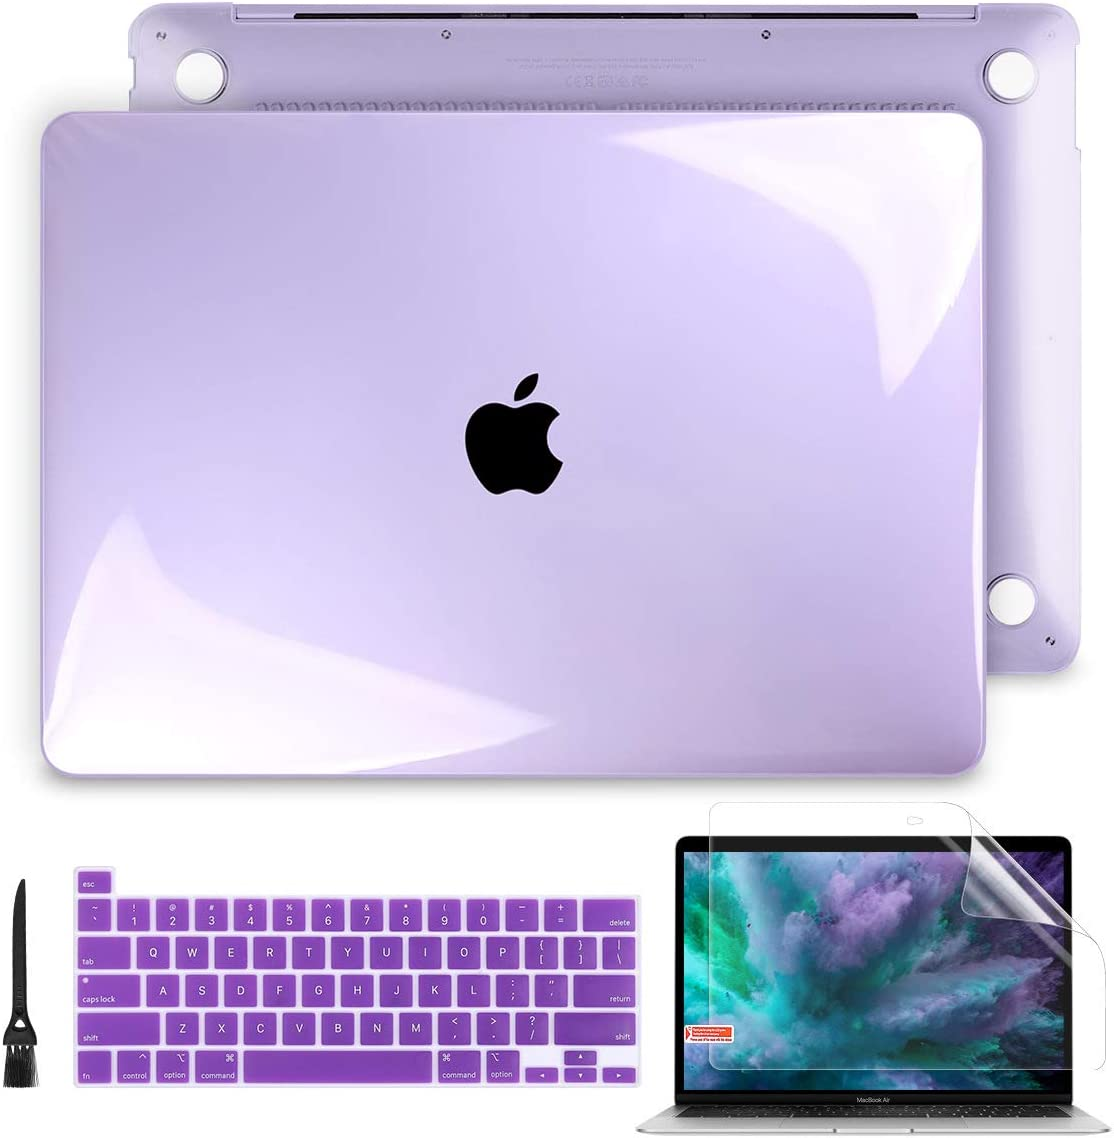 Batianda for MacBook Pro 13 Case A2289 A2251 Model (2020 Release), Crystal Hard Shell Case with Keyboard Cover & Screen Protector for Newest MacBook Pro 13 inch with Touch Bar, Crystal Purple